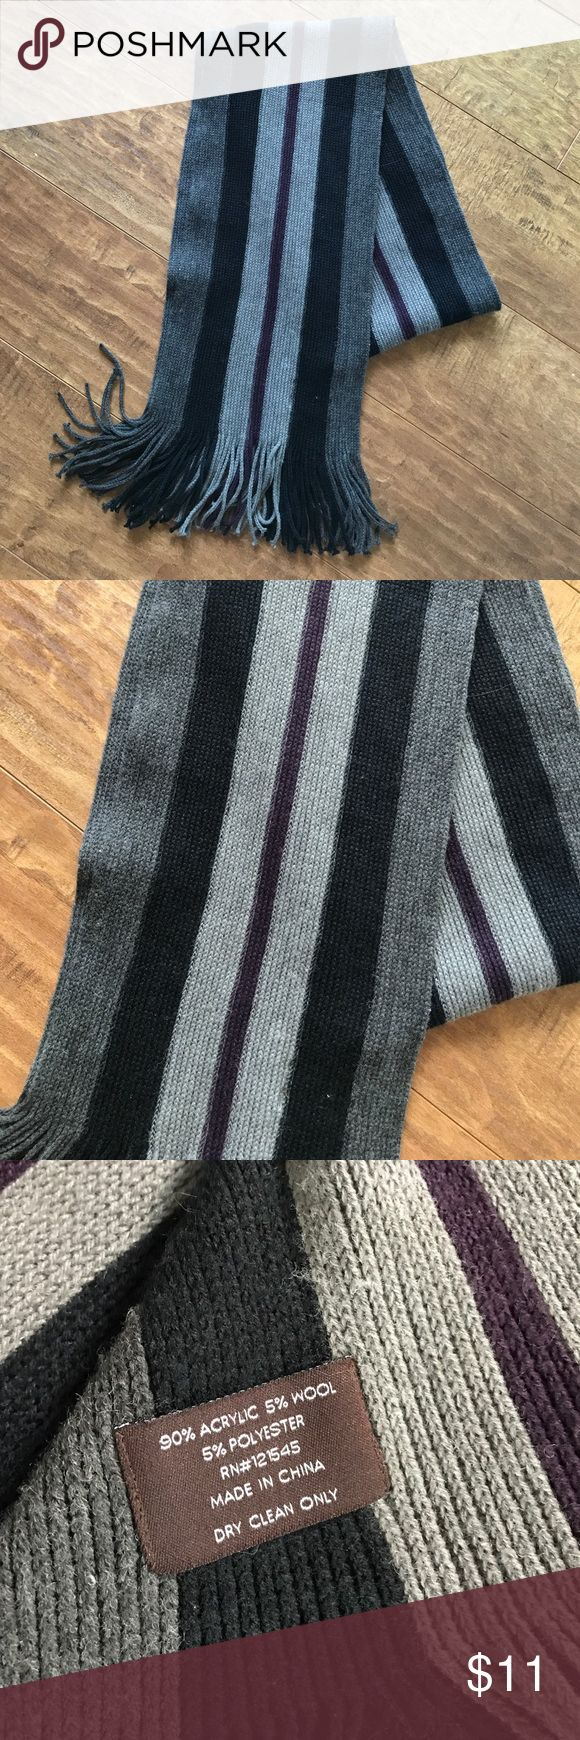 Men's Wool Sweater Scarf Black, gray, & plum/dark purple Accessories Scarves